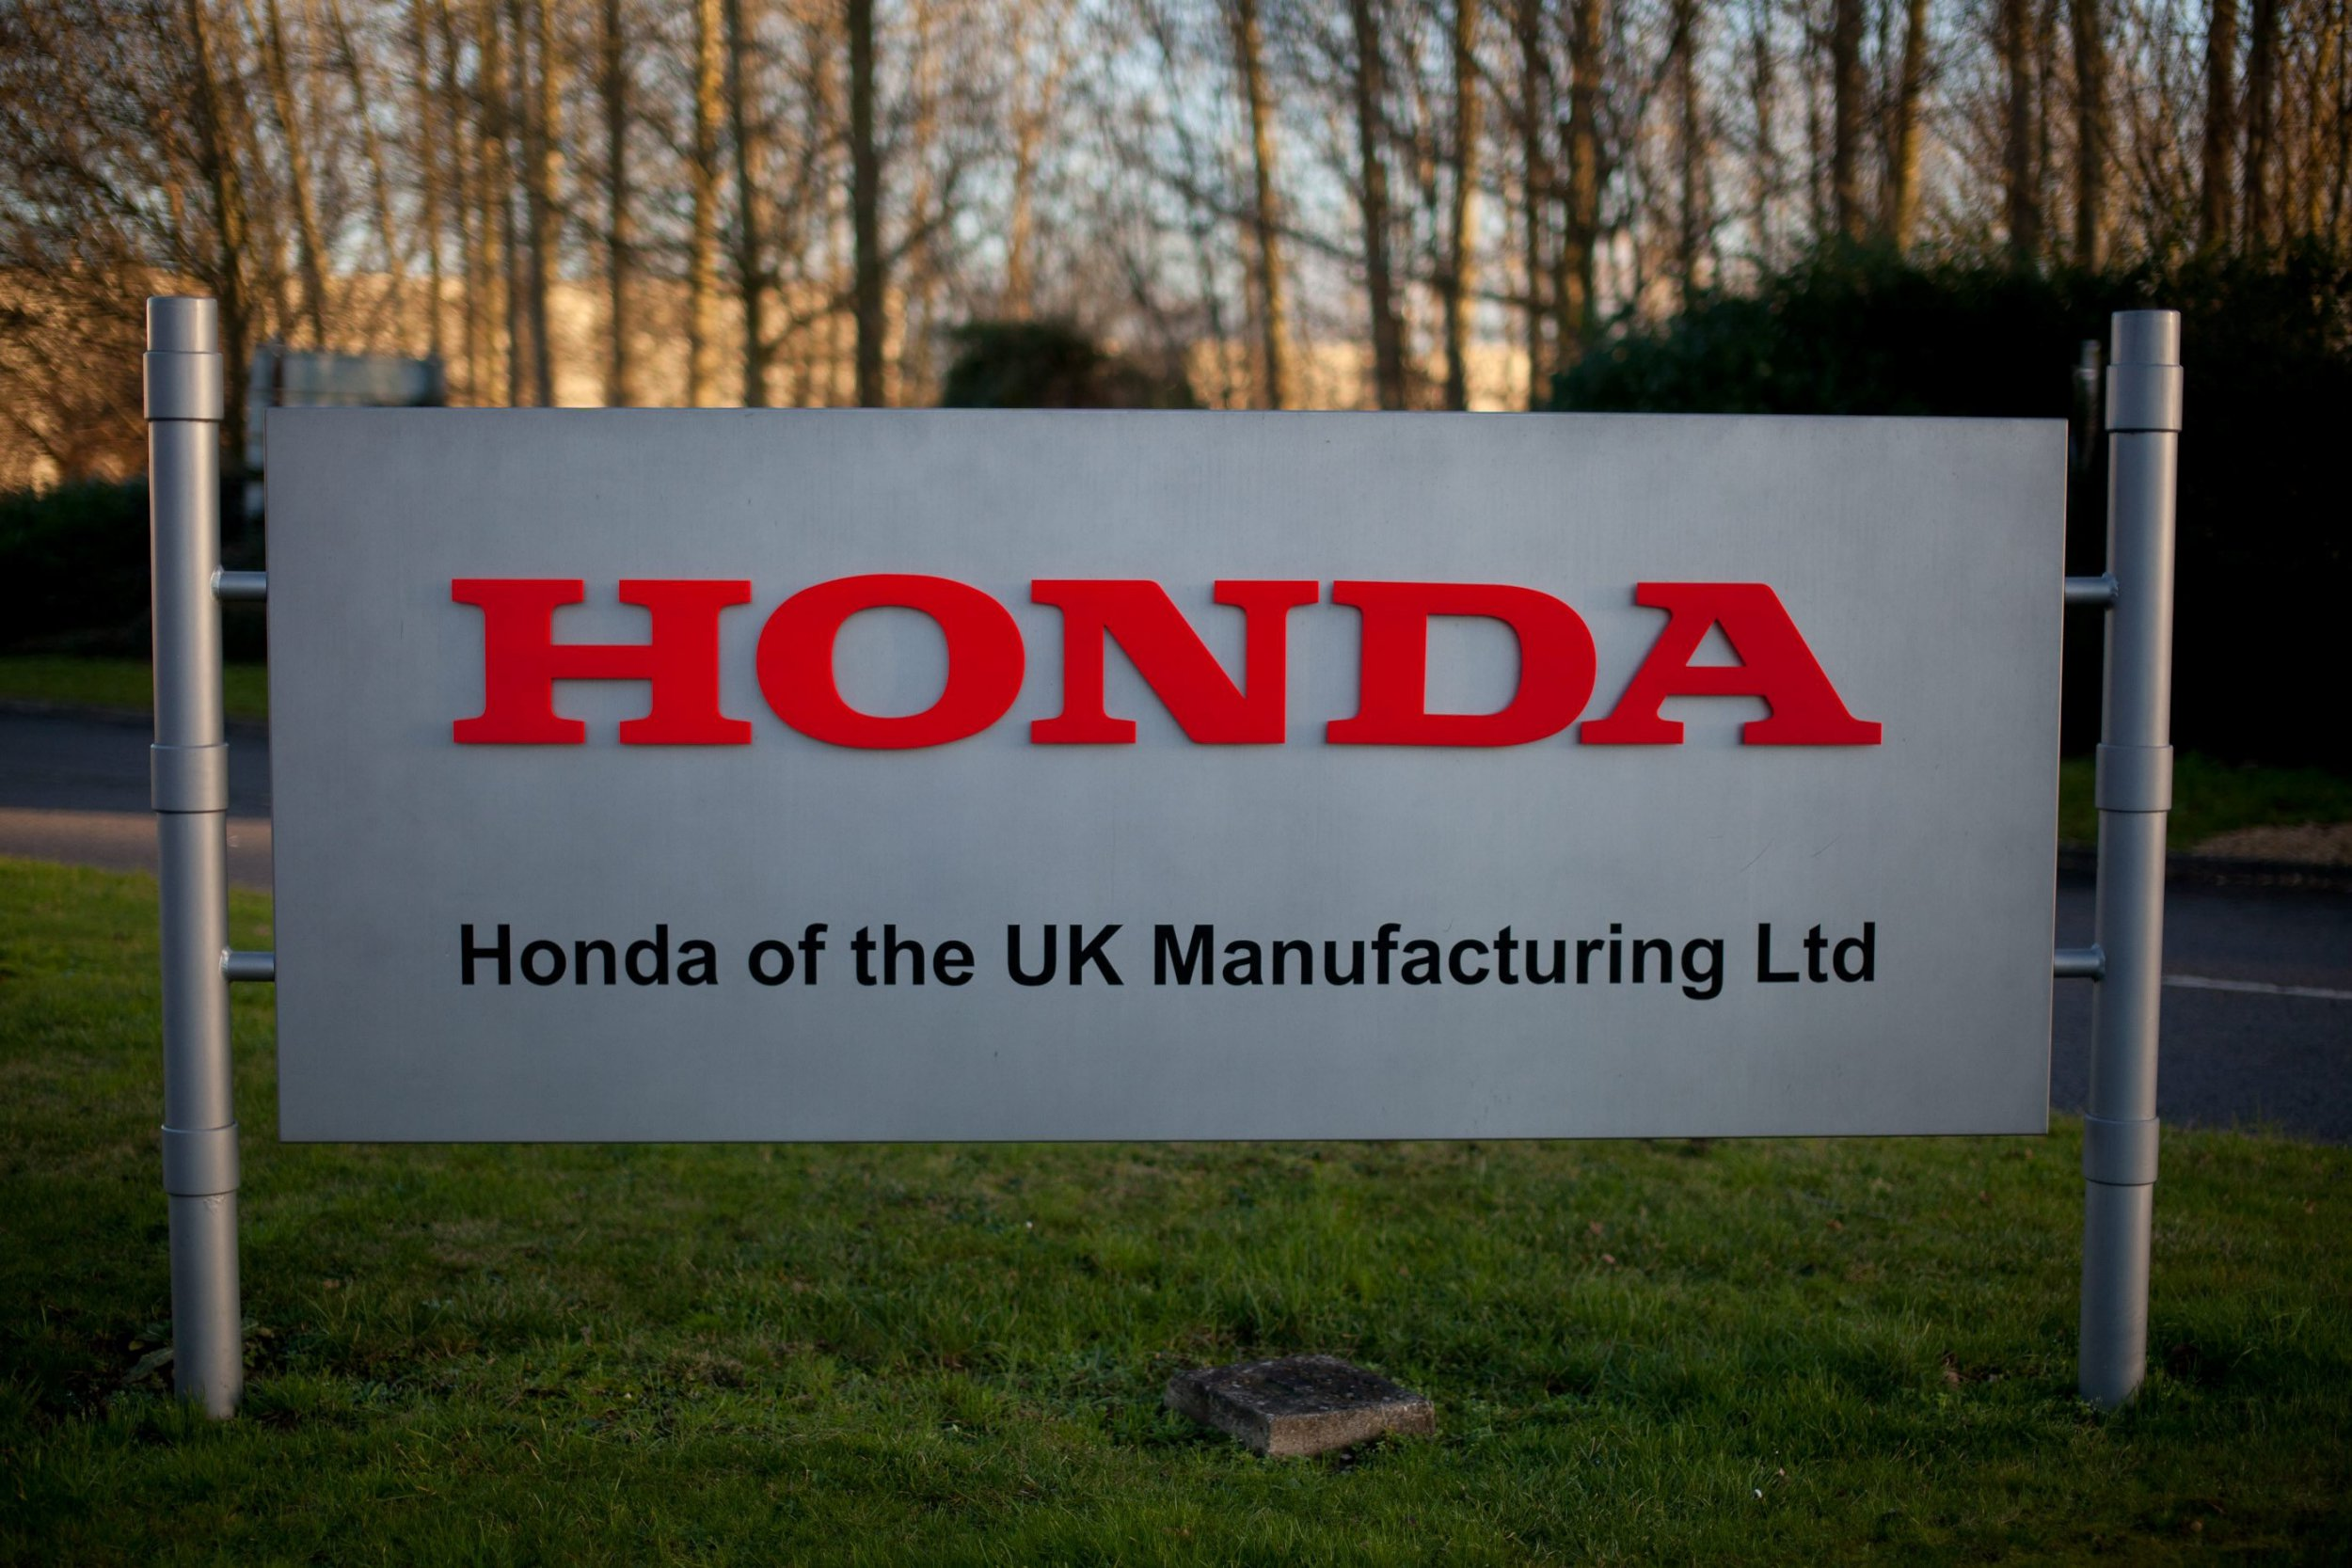 File photo of the Honda factory in Swindon, Wiltshire. Sky news are reporting that the Japanese company are set to close the factory with a loss of 3500 jobs.